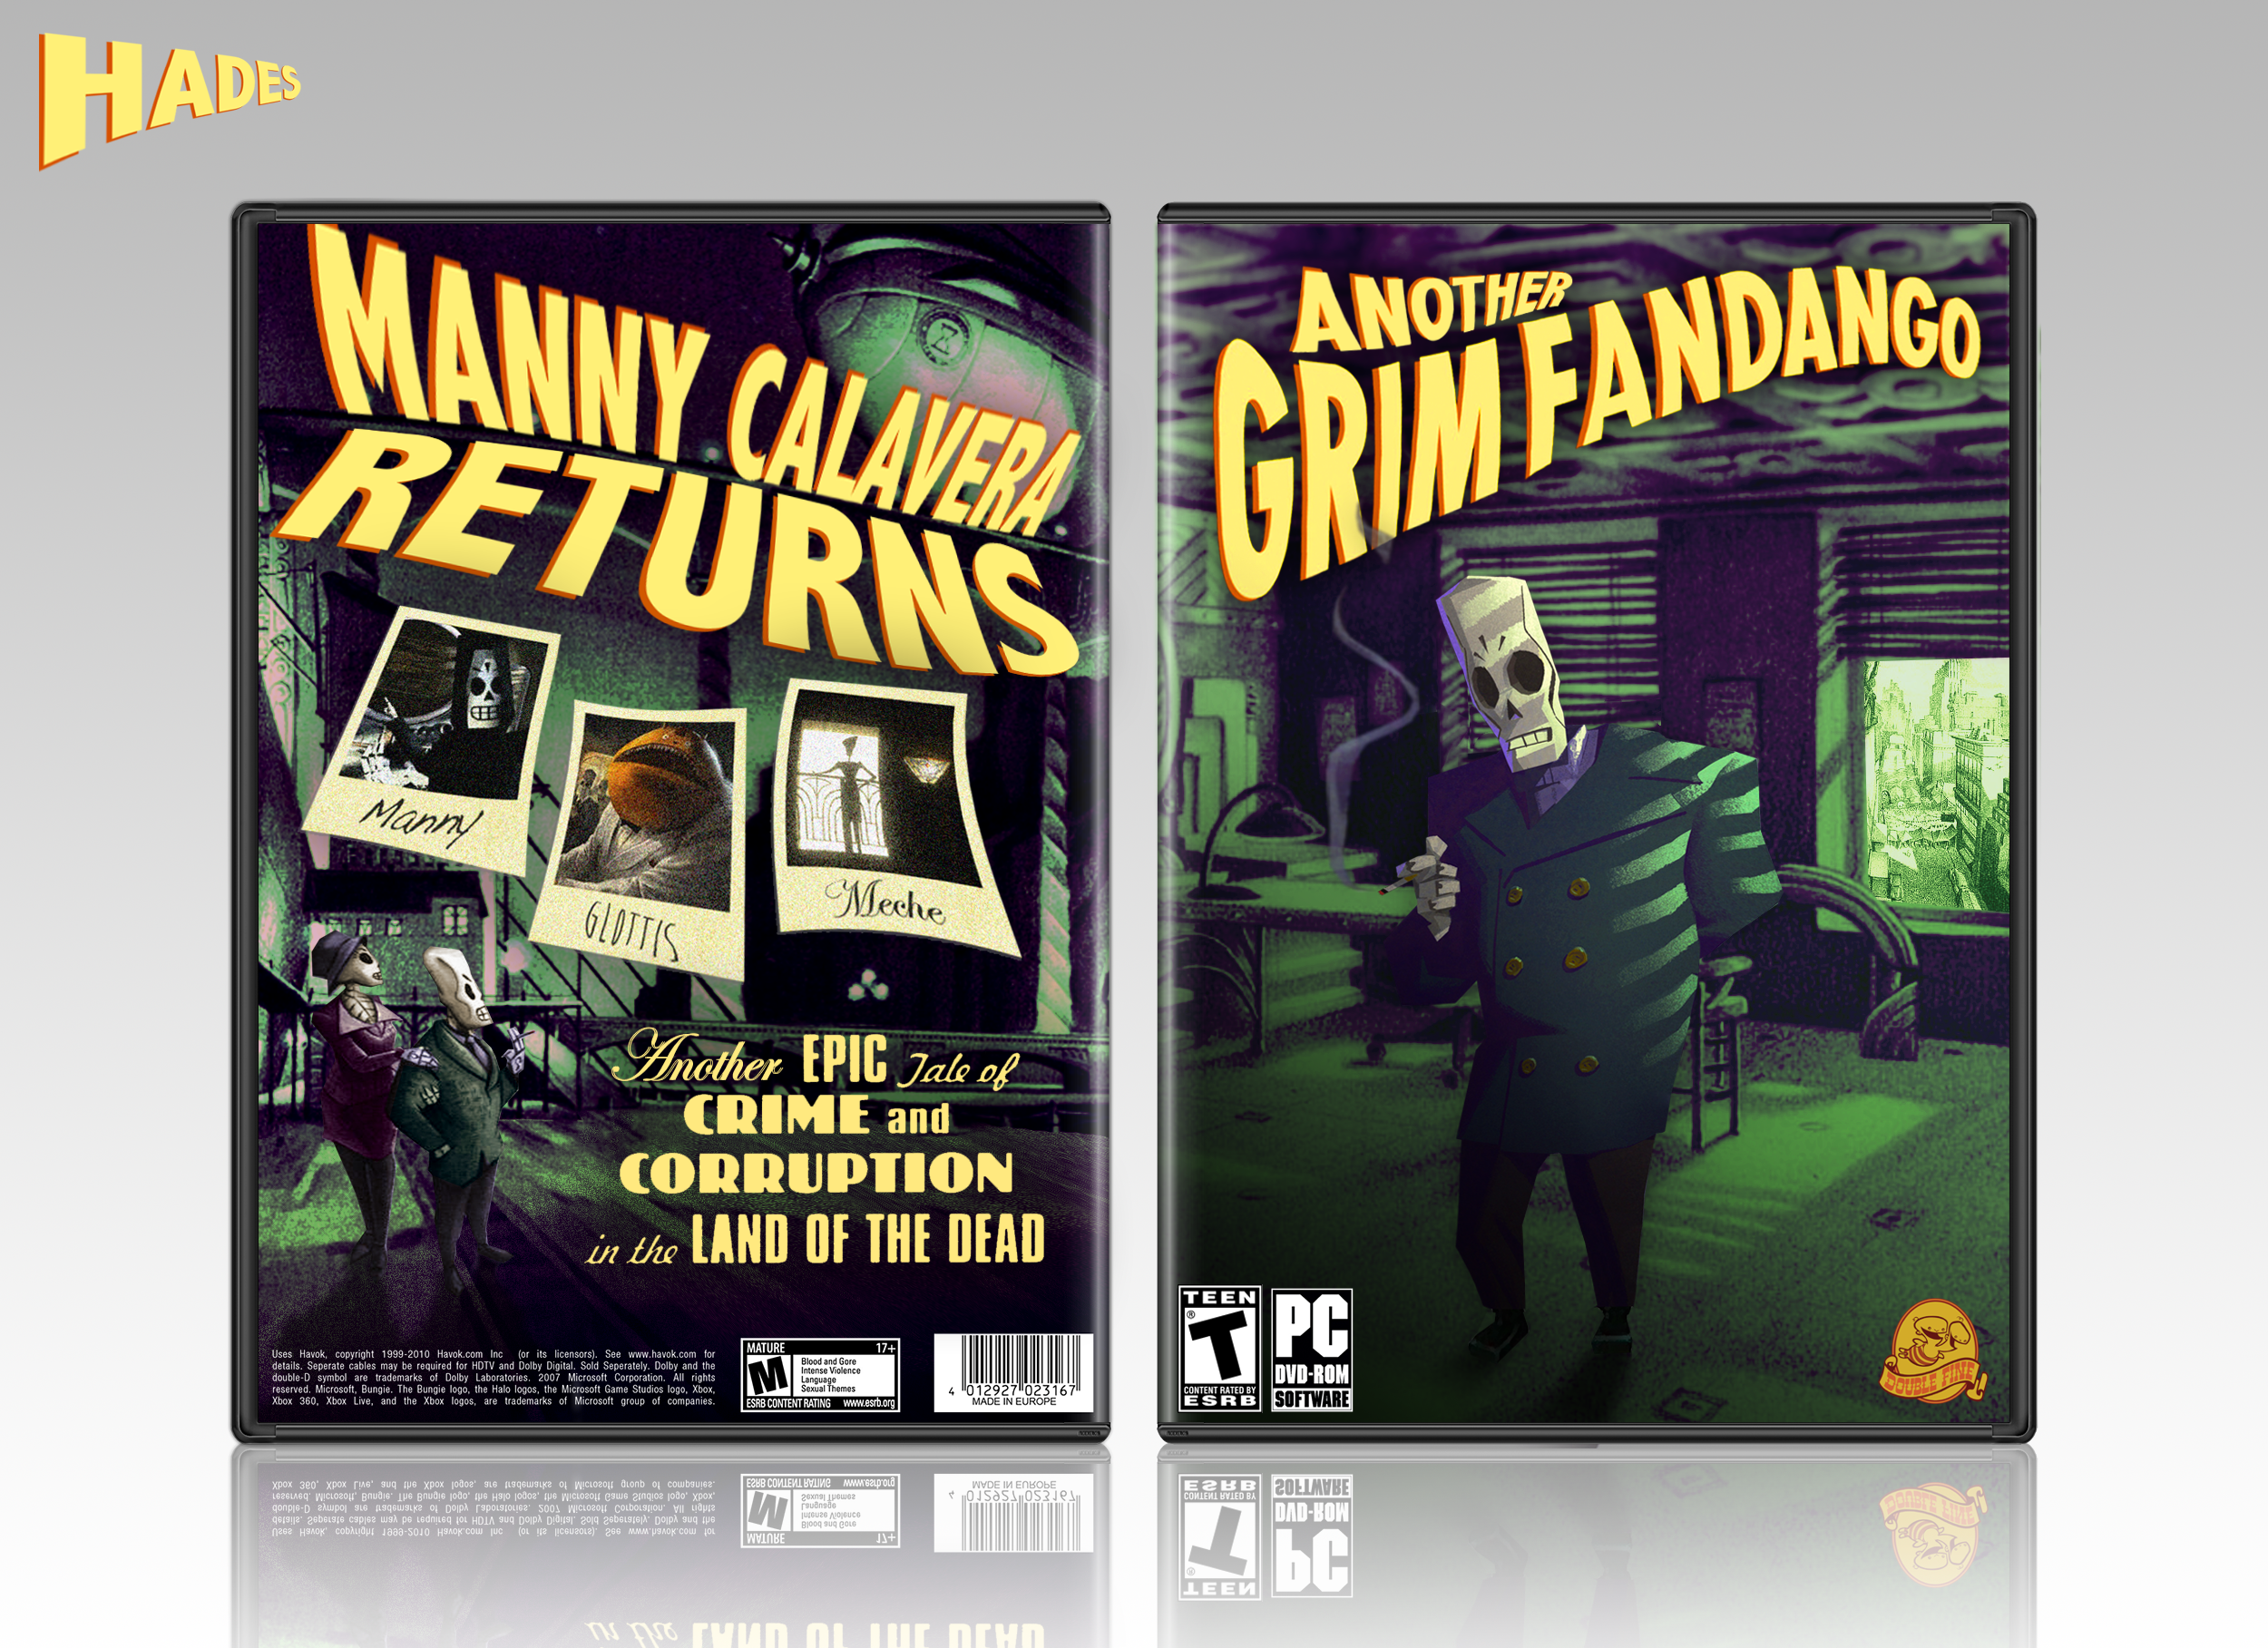 Another Grim Fandango box cover